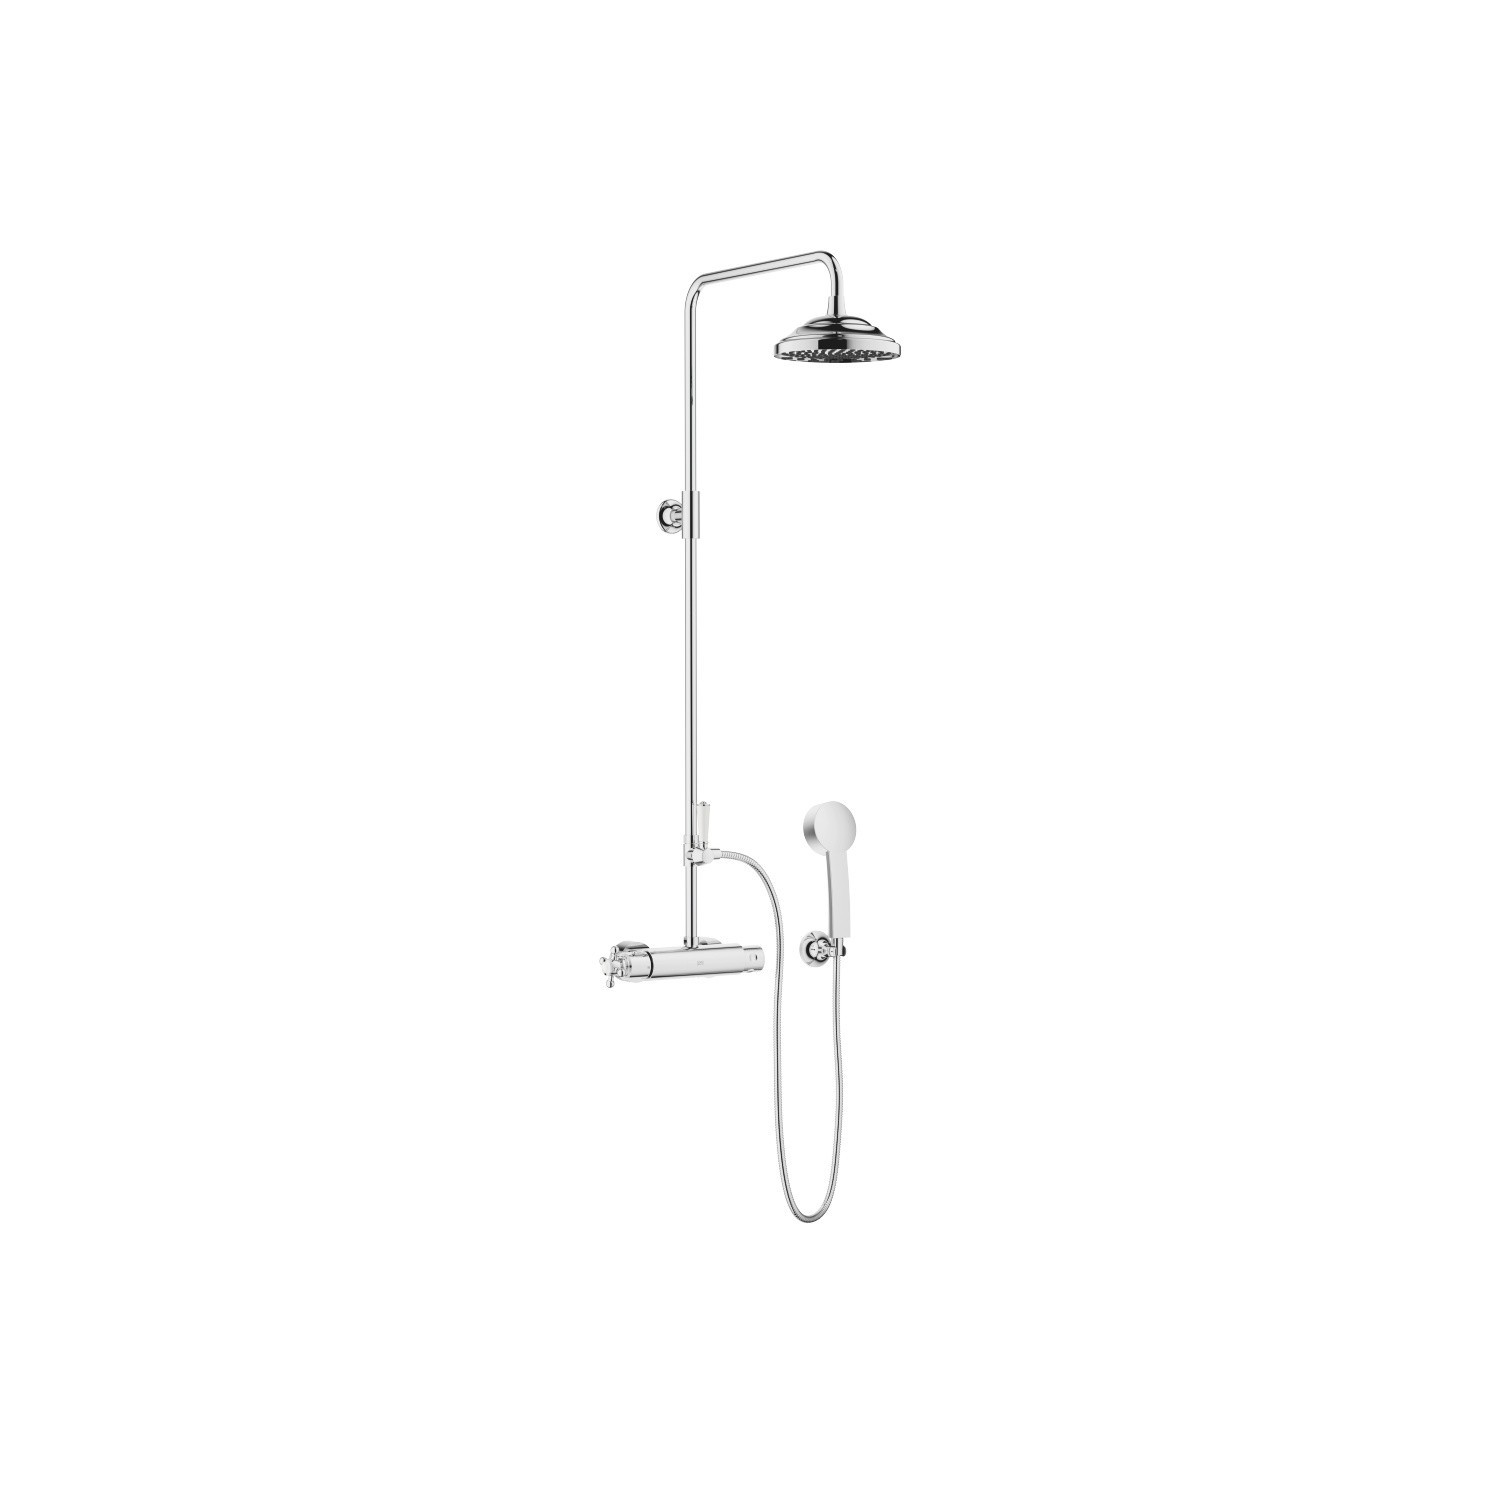 DORNBRACHT 34455970-0010 MADISON WALL MOUNT SHOWER THERMOSTAT WITH RAINHEAD AND HAND SHOWER SET